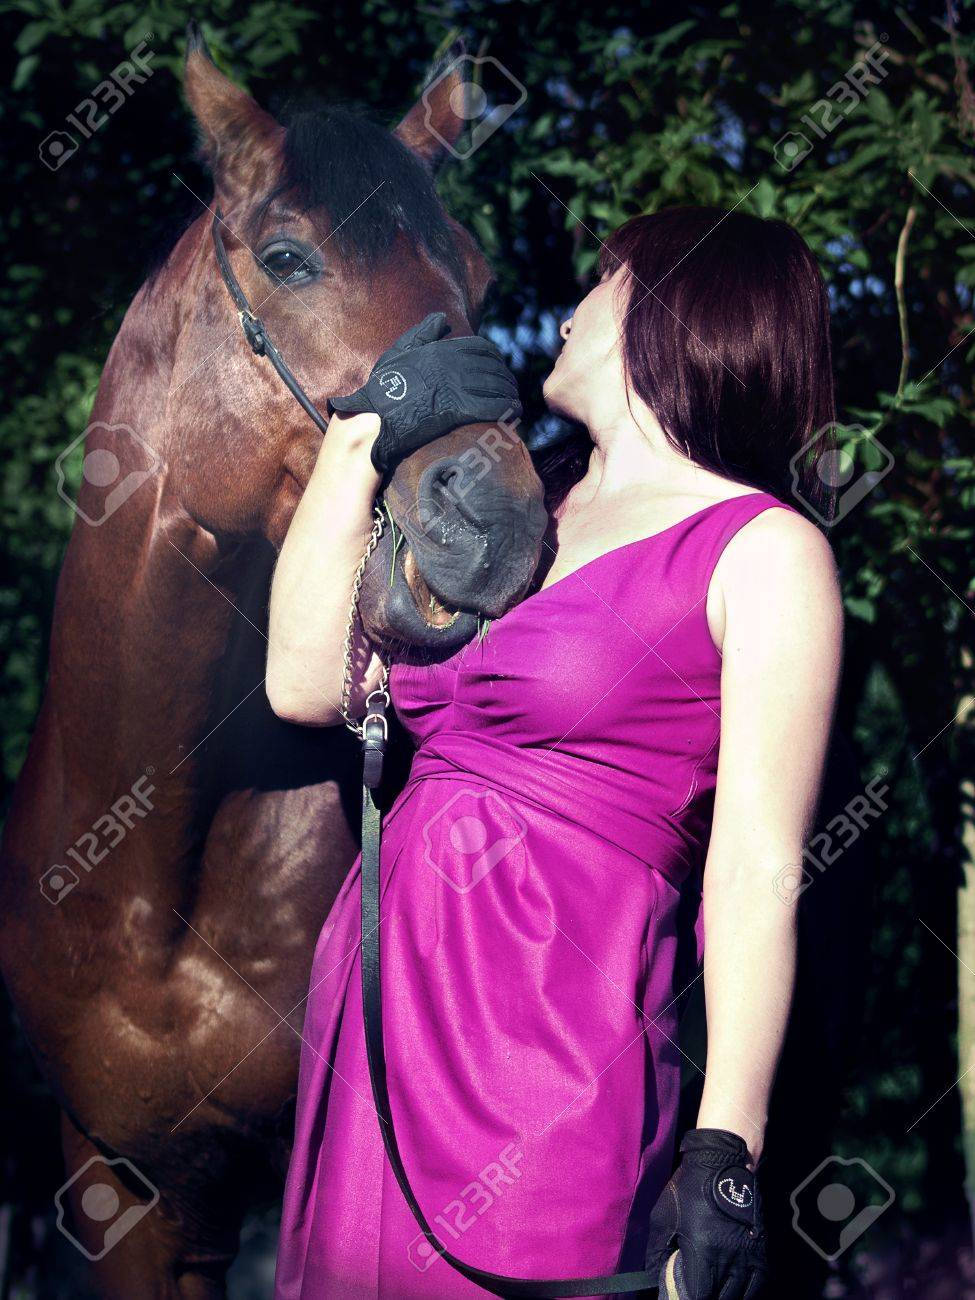 Pretty Women With Beautiful Horse Stock Photo Picture And Royalty Free Image Image 12145227